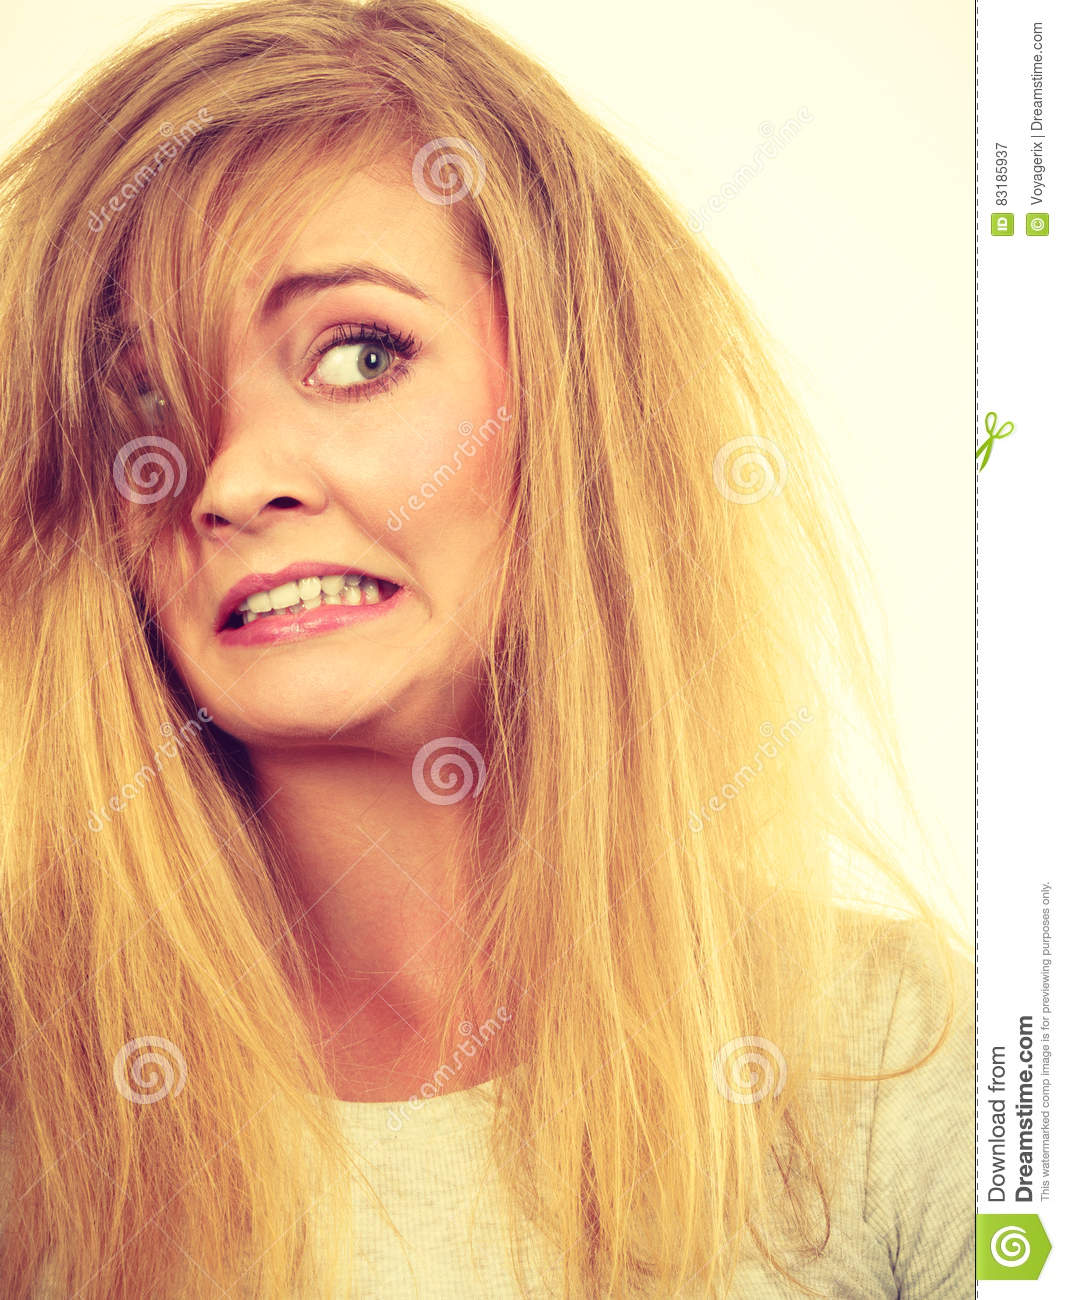 Grimace face clip art stock photo woman pulls a face in upset - Royalty Free Stock Photo